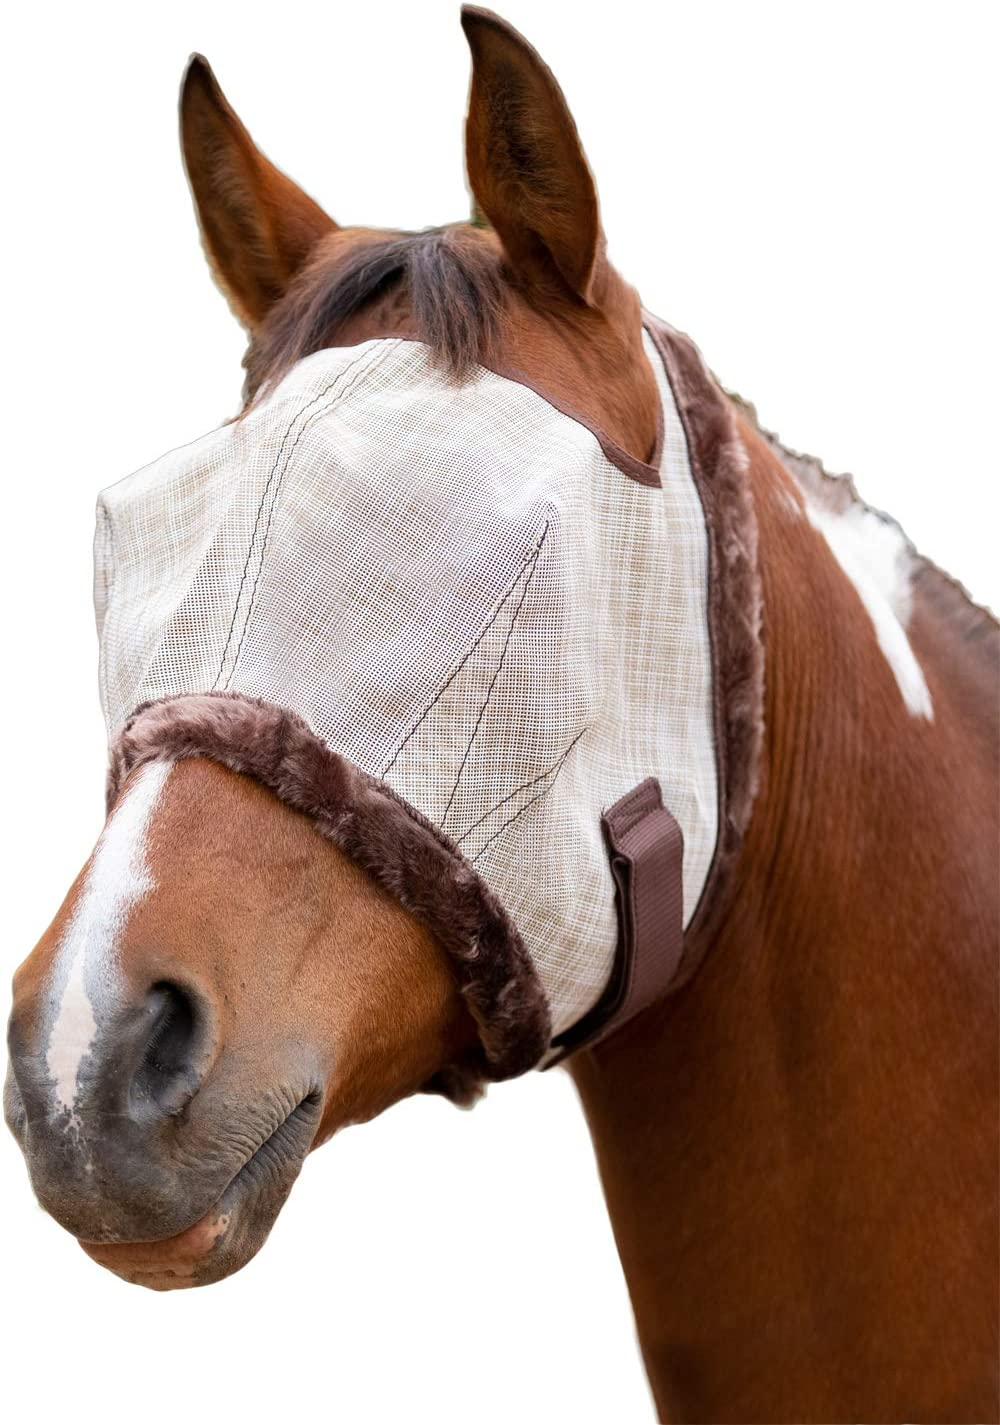 Kensington Fly Mask with Fleece Trim for Horses /— Protects Face and Eyes From Flies and UV Rays While Allowing Full Visibility /—  Breathable and Non Heat Transferring Makes it Perfect Year Round